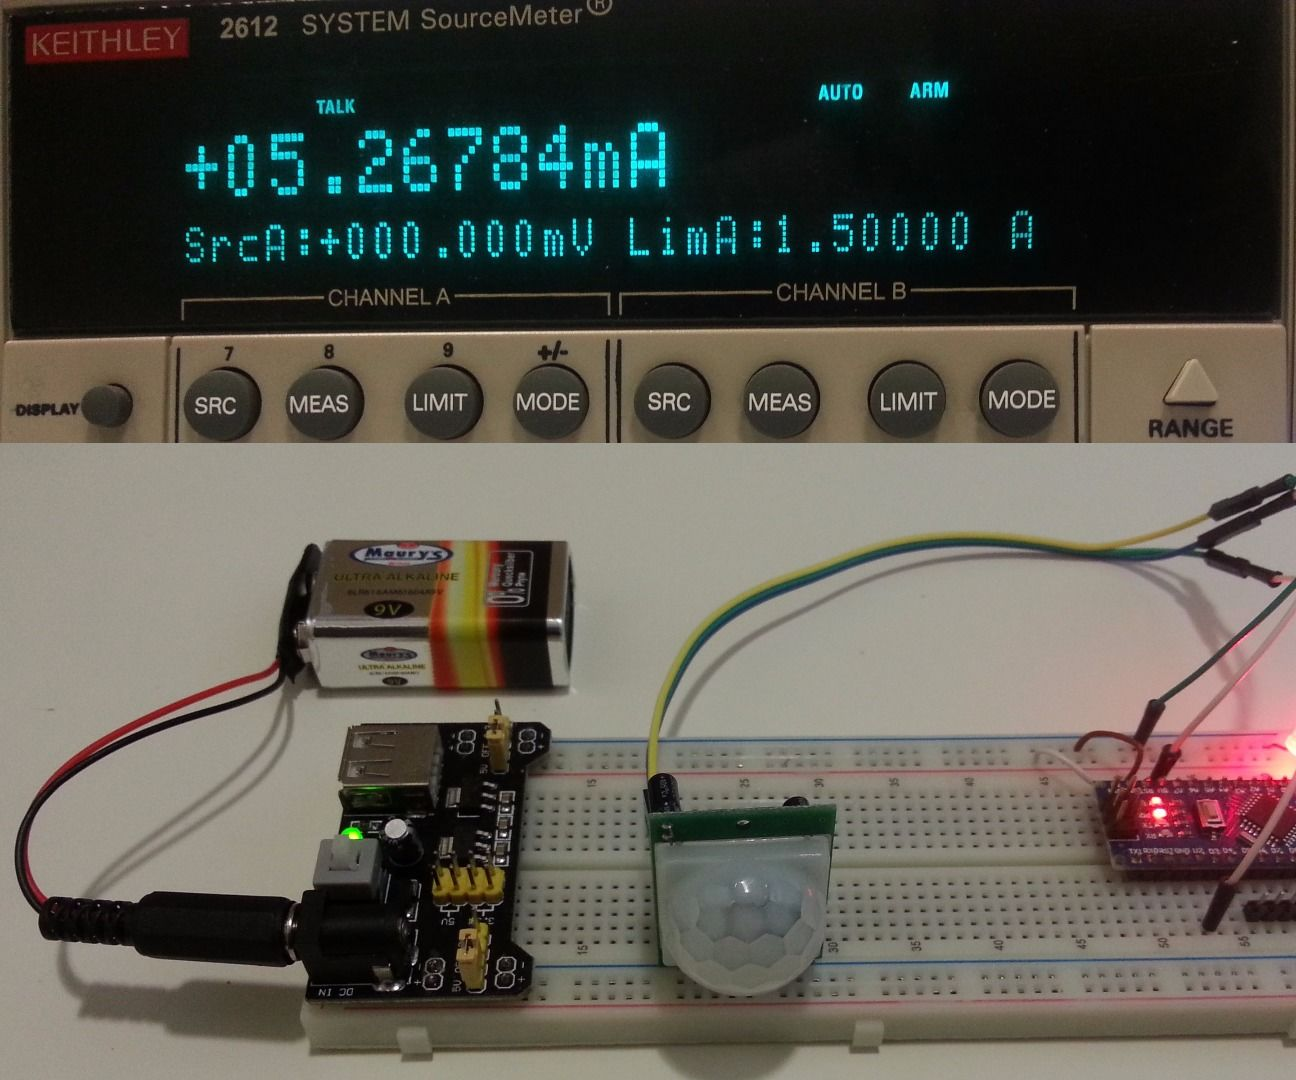 pir motion detector with arduino operated at lowest power consumption mode [ 1296 x 1080 Pixel ]